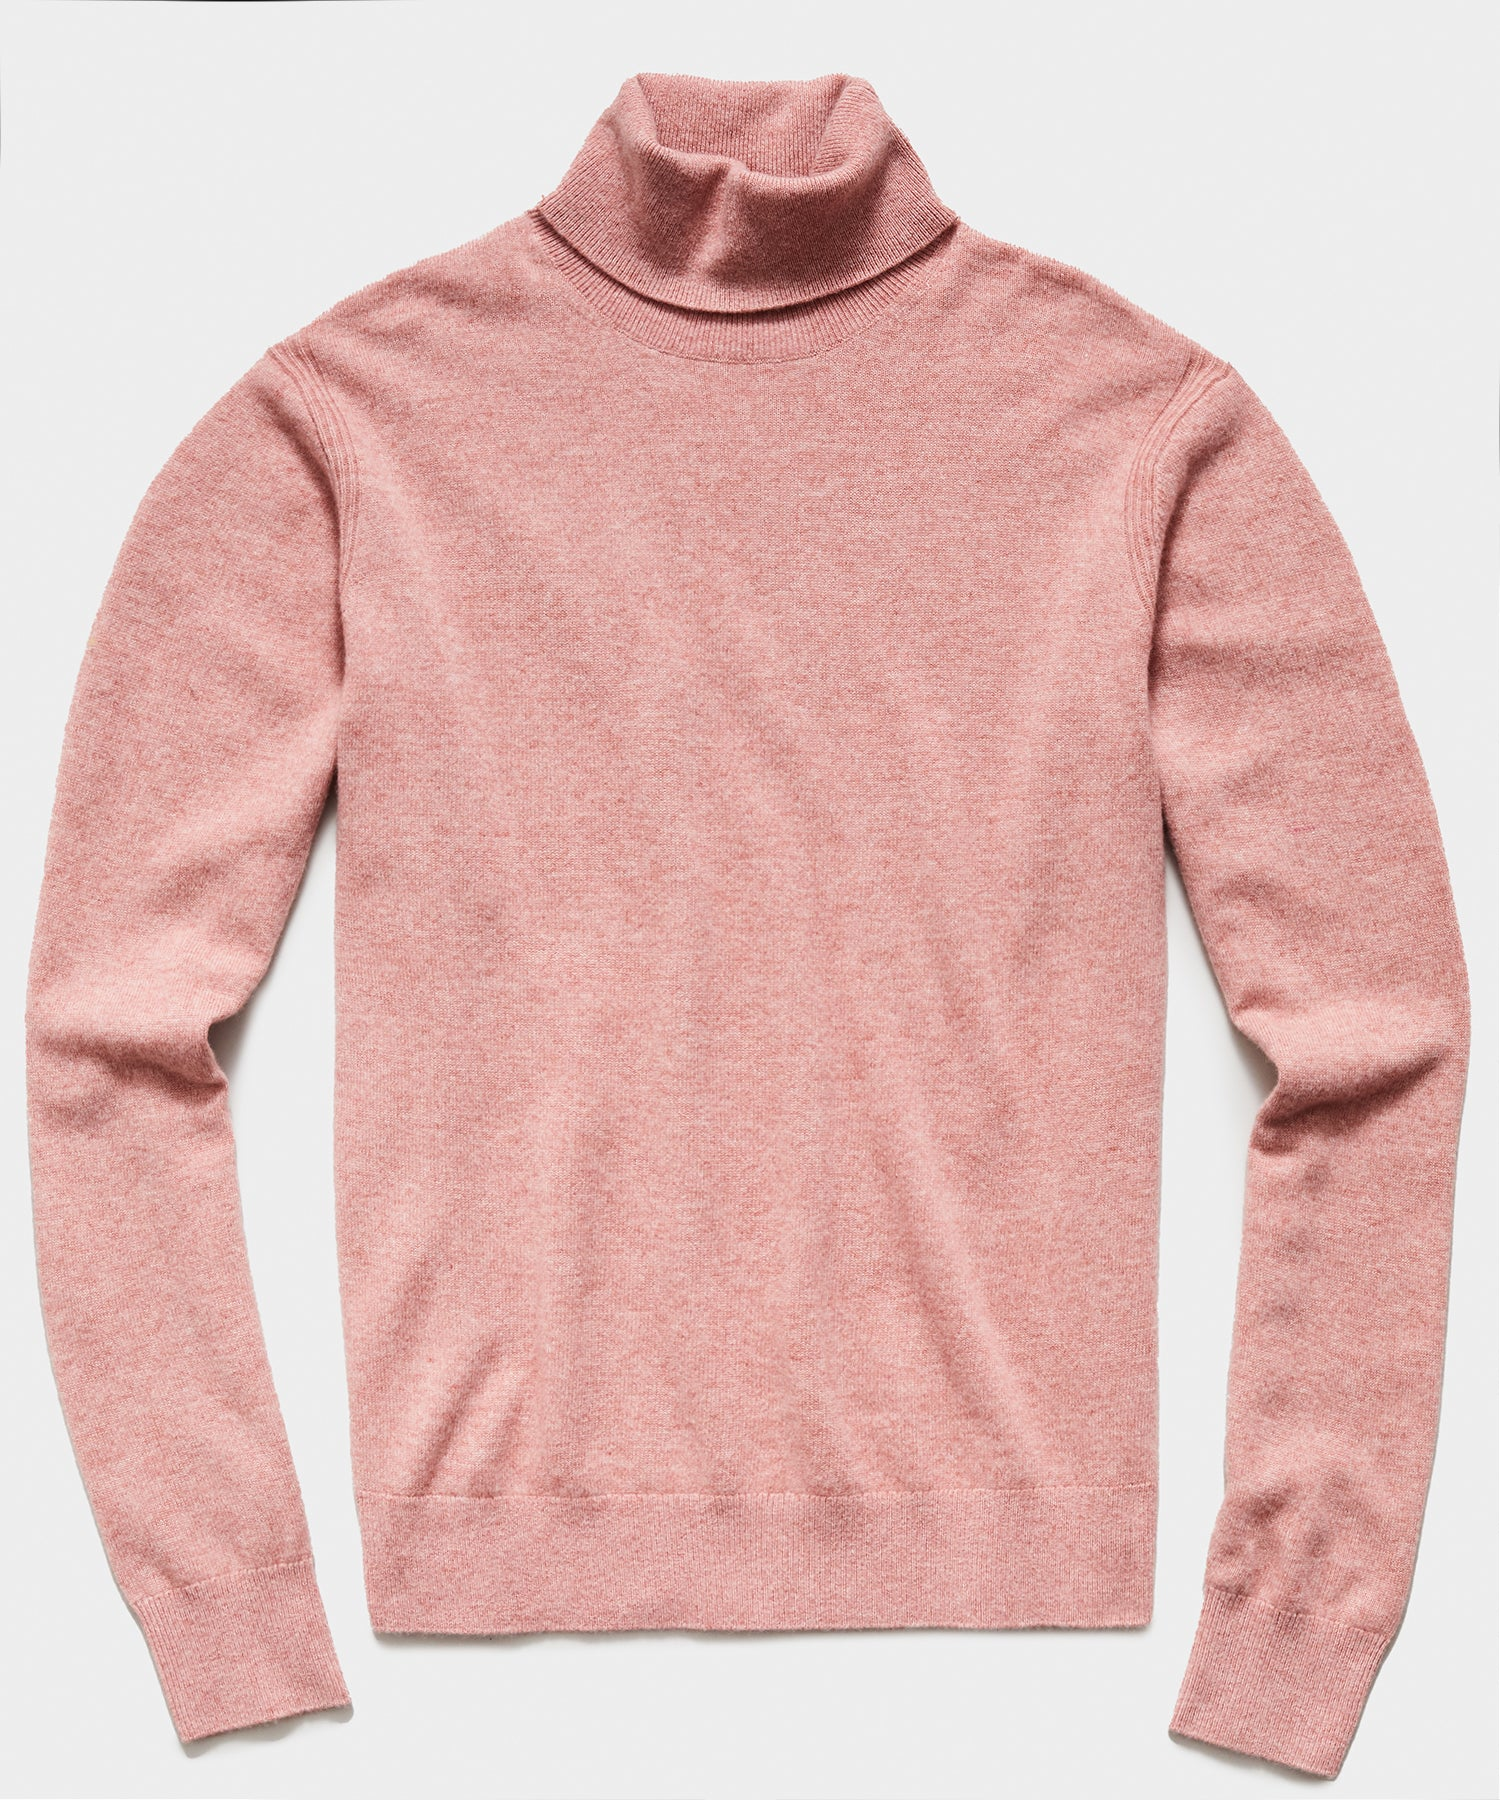 Cashmere Turtleneck in Mauve